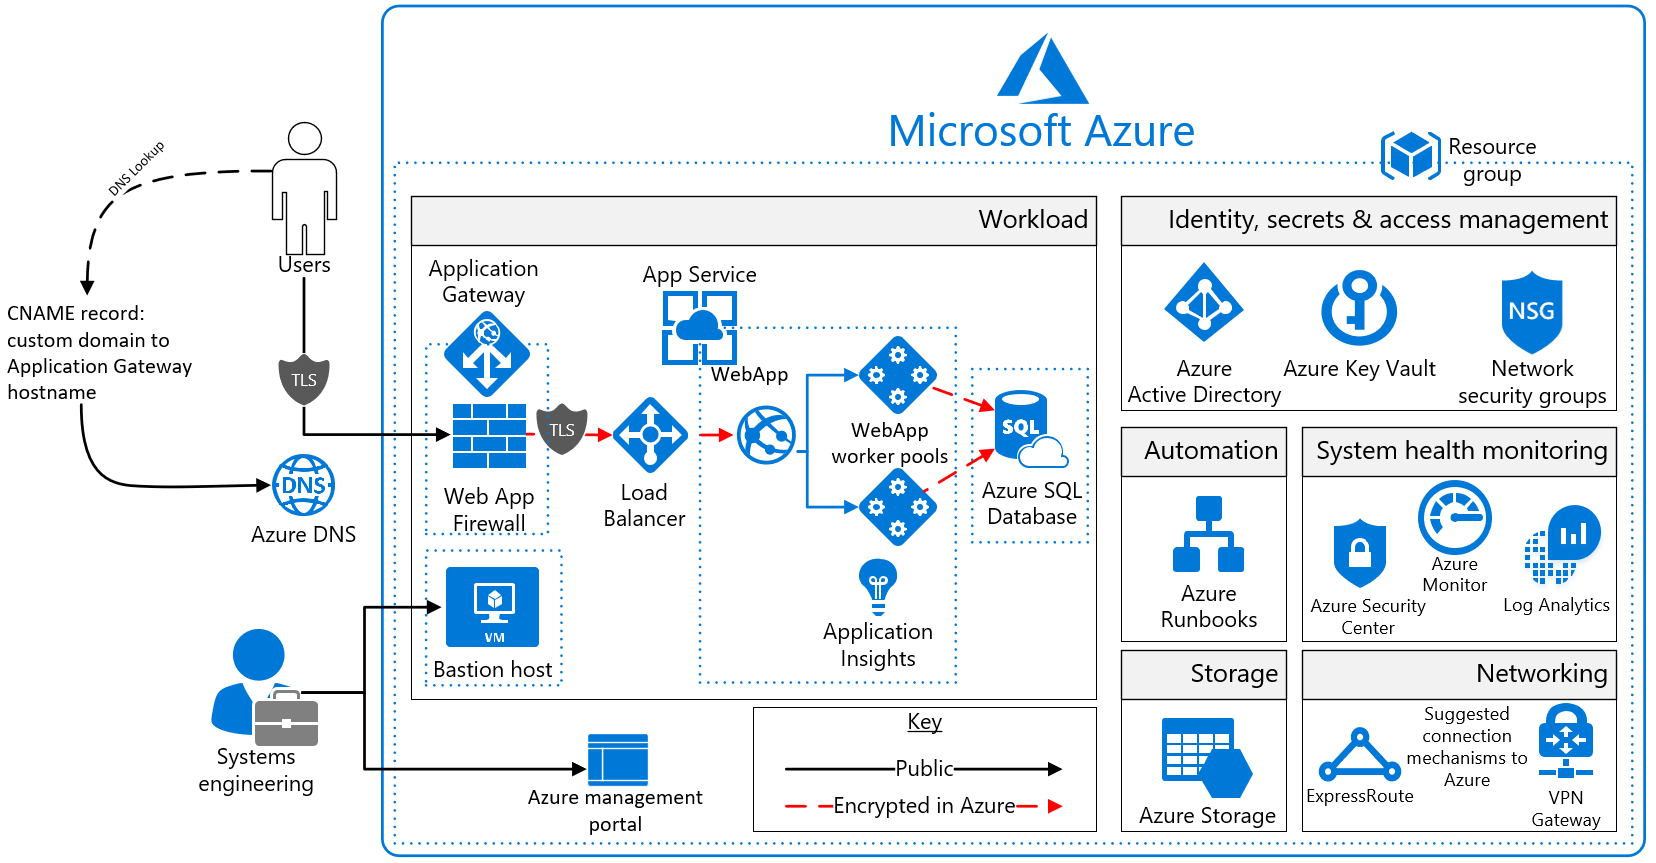 Pci Dss 3.2 Spreadsheet Throughout Azure Security And Compliance Blueprint  Paas Web Application For